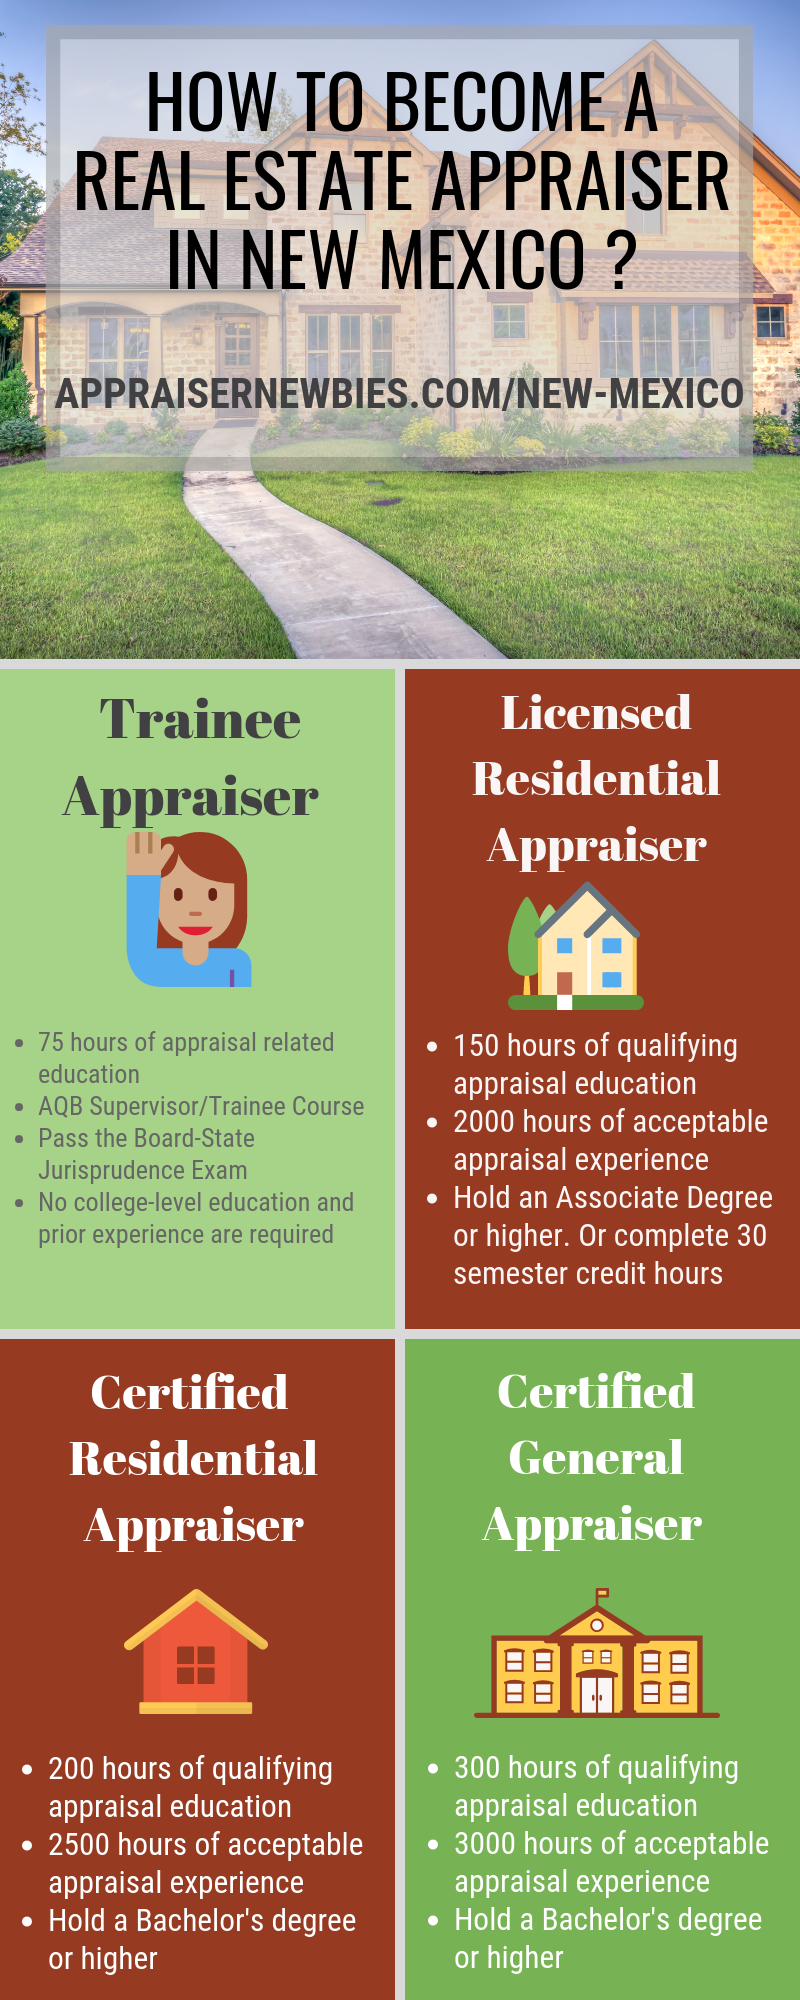 How To Become A Real Estate Appraiser In New Mexico New Mexico How To Become Work Experience